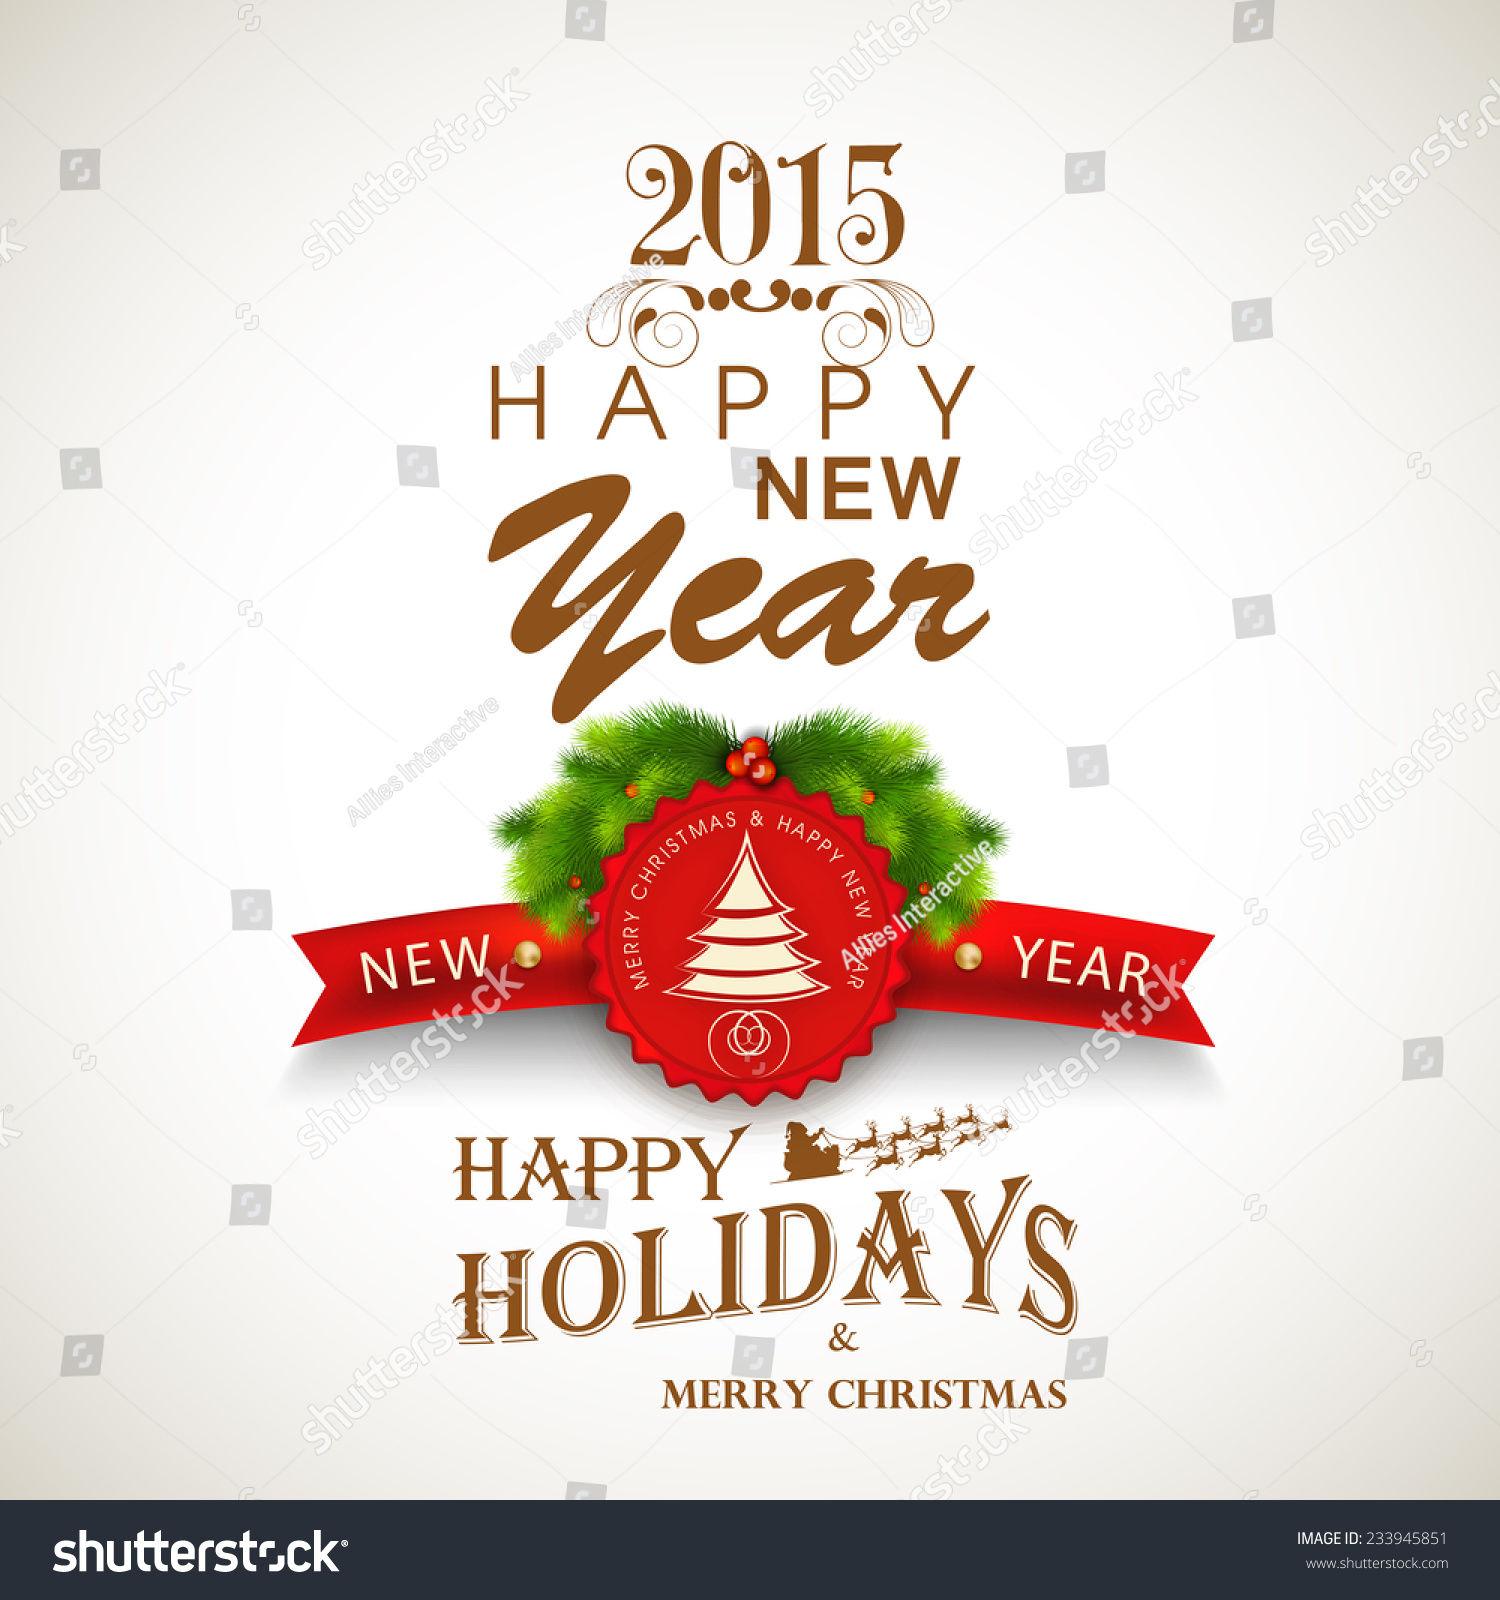 happy new year merry christmas celebration stock vector  happy new year and merry christmas celebration beautiful poster banner or flyer design fir